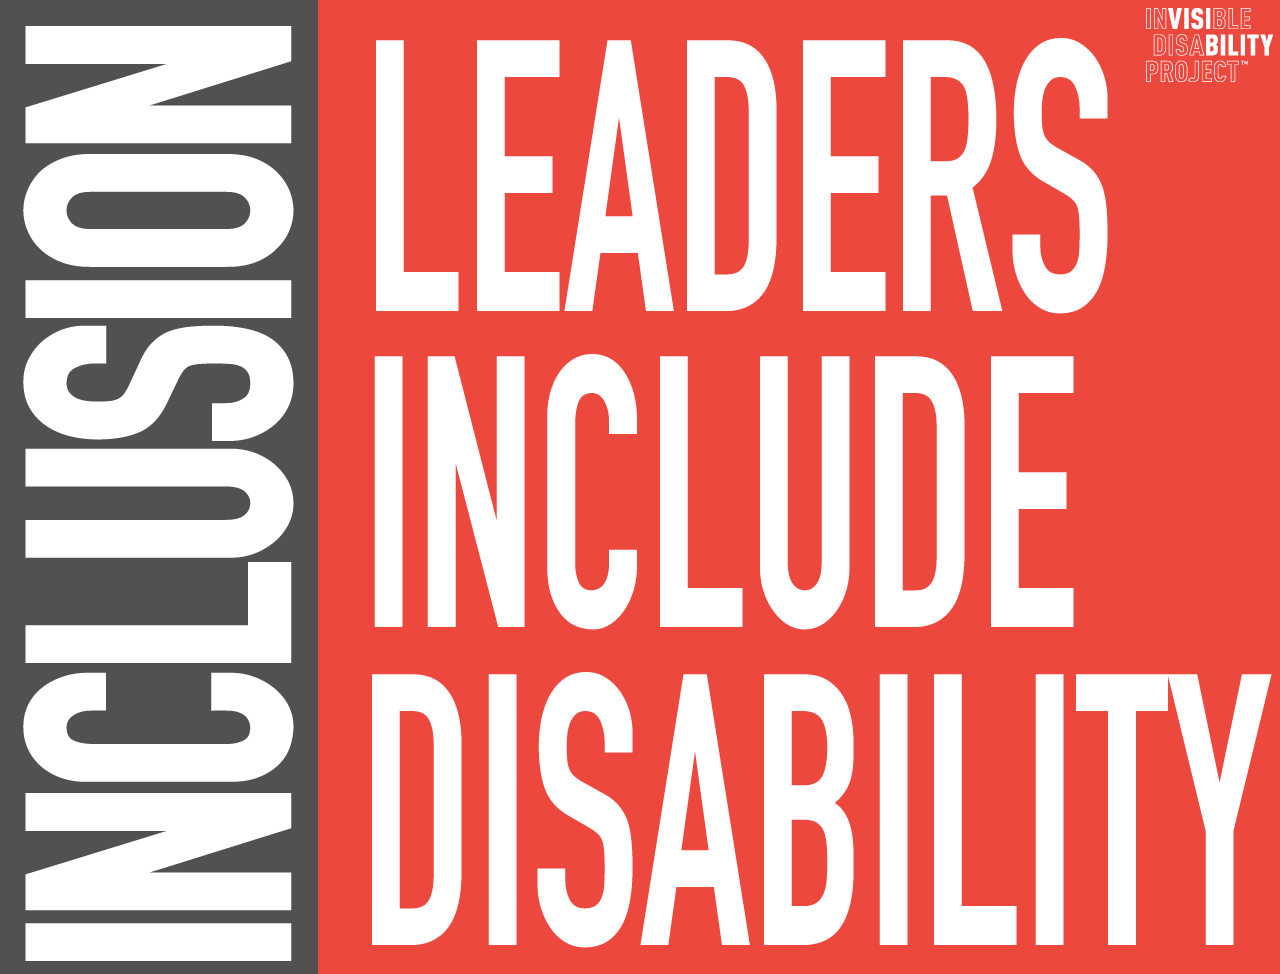 Inclusion Leaders Include Disability